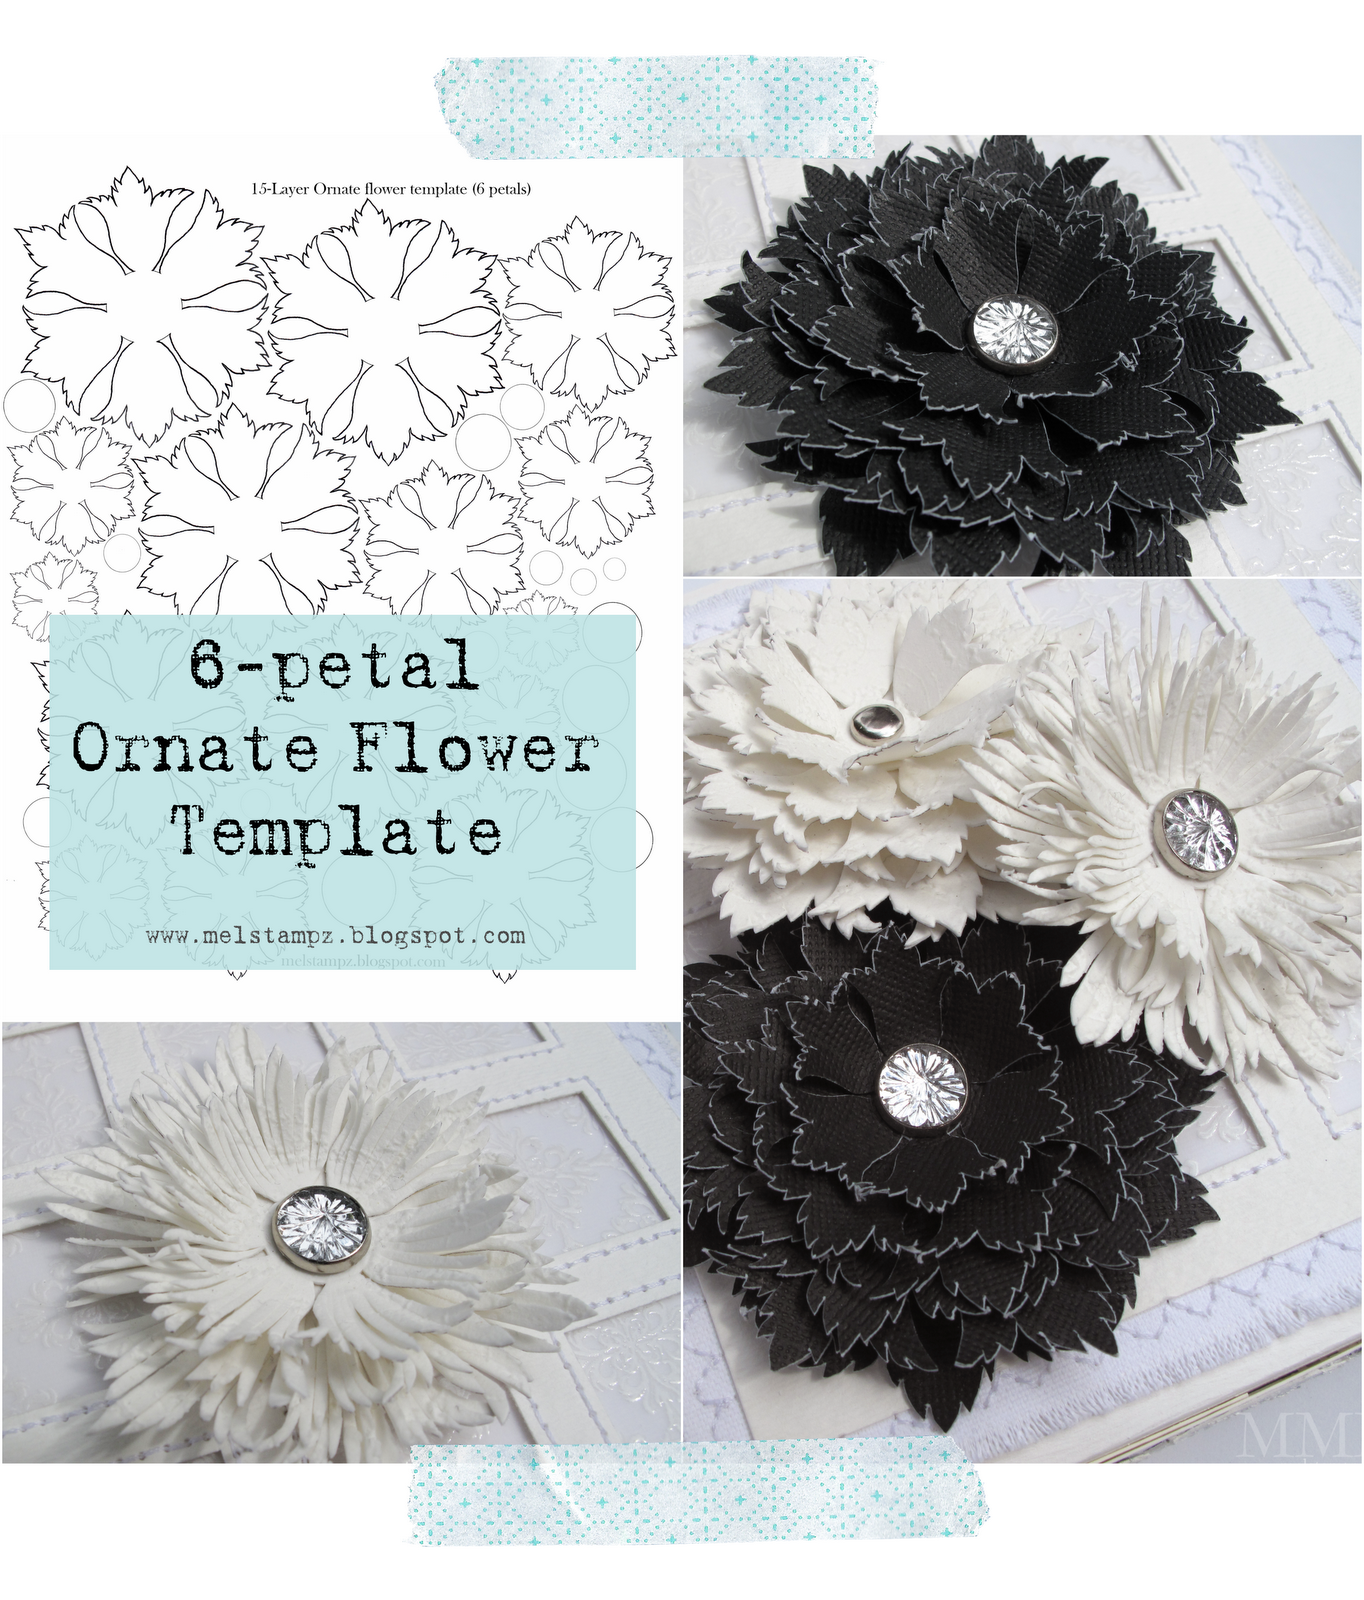 mel stampz 6 petal ornate flower template can be printed out